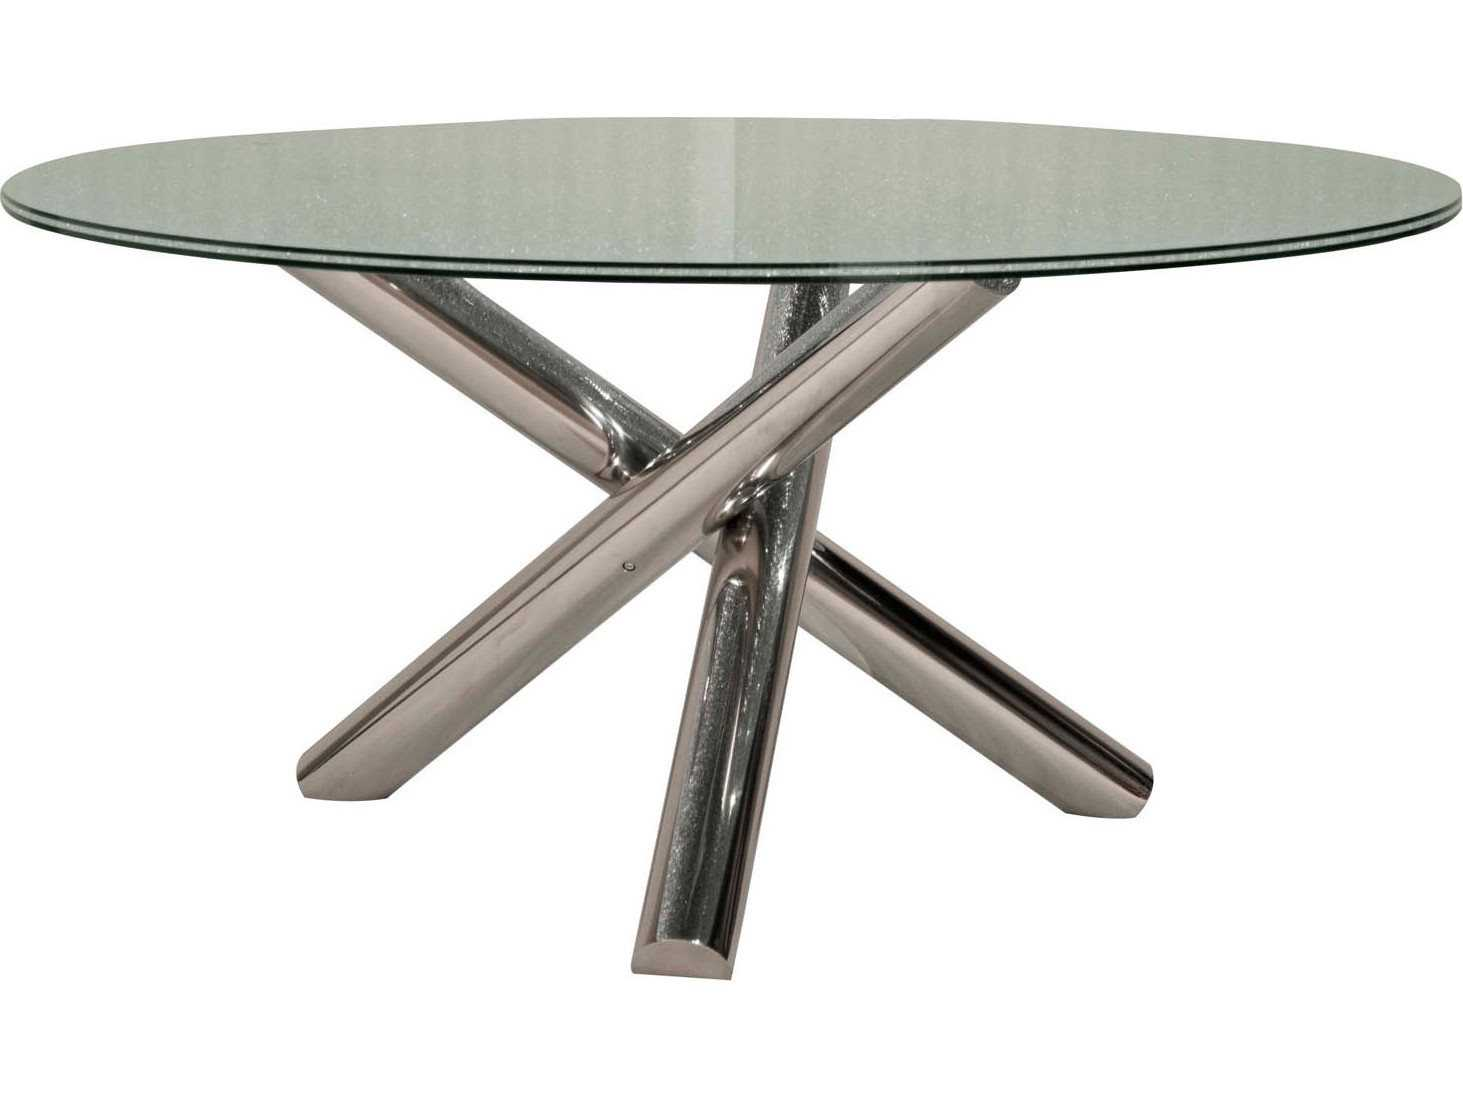 Star Furniture Dining Table: Star International Furniture Ritz Gotham Dining Table Base